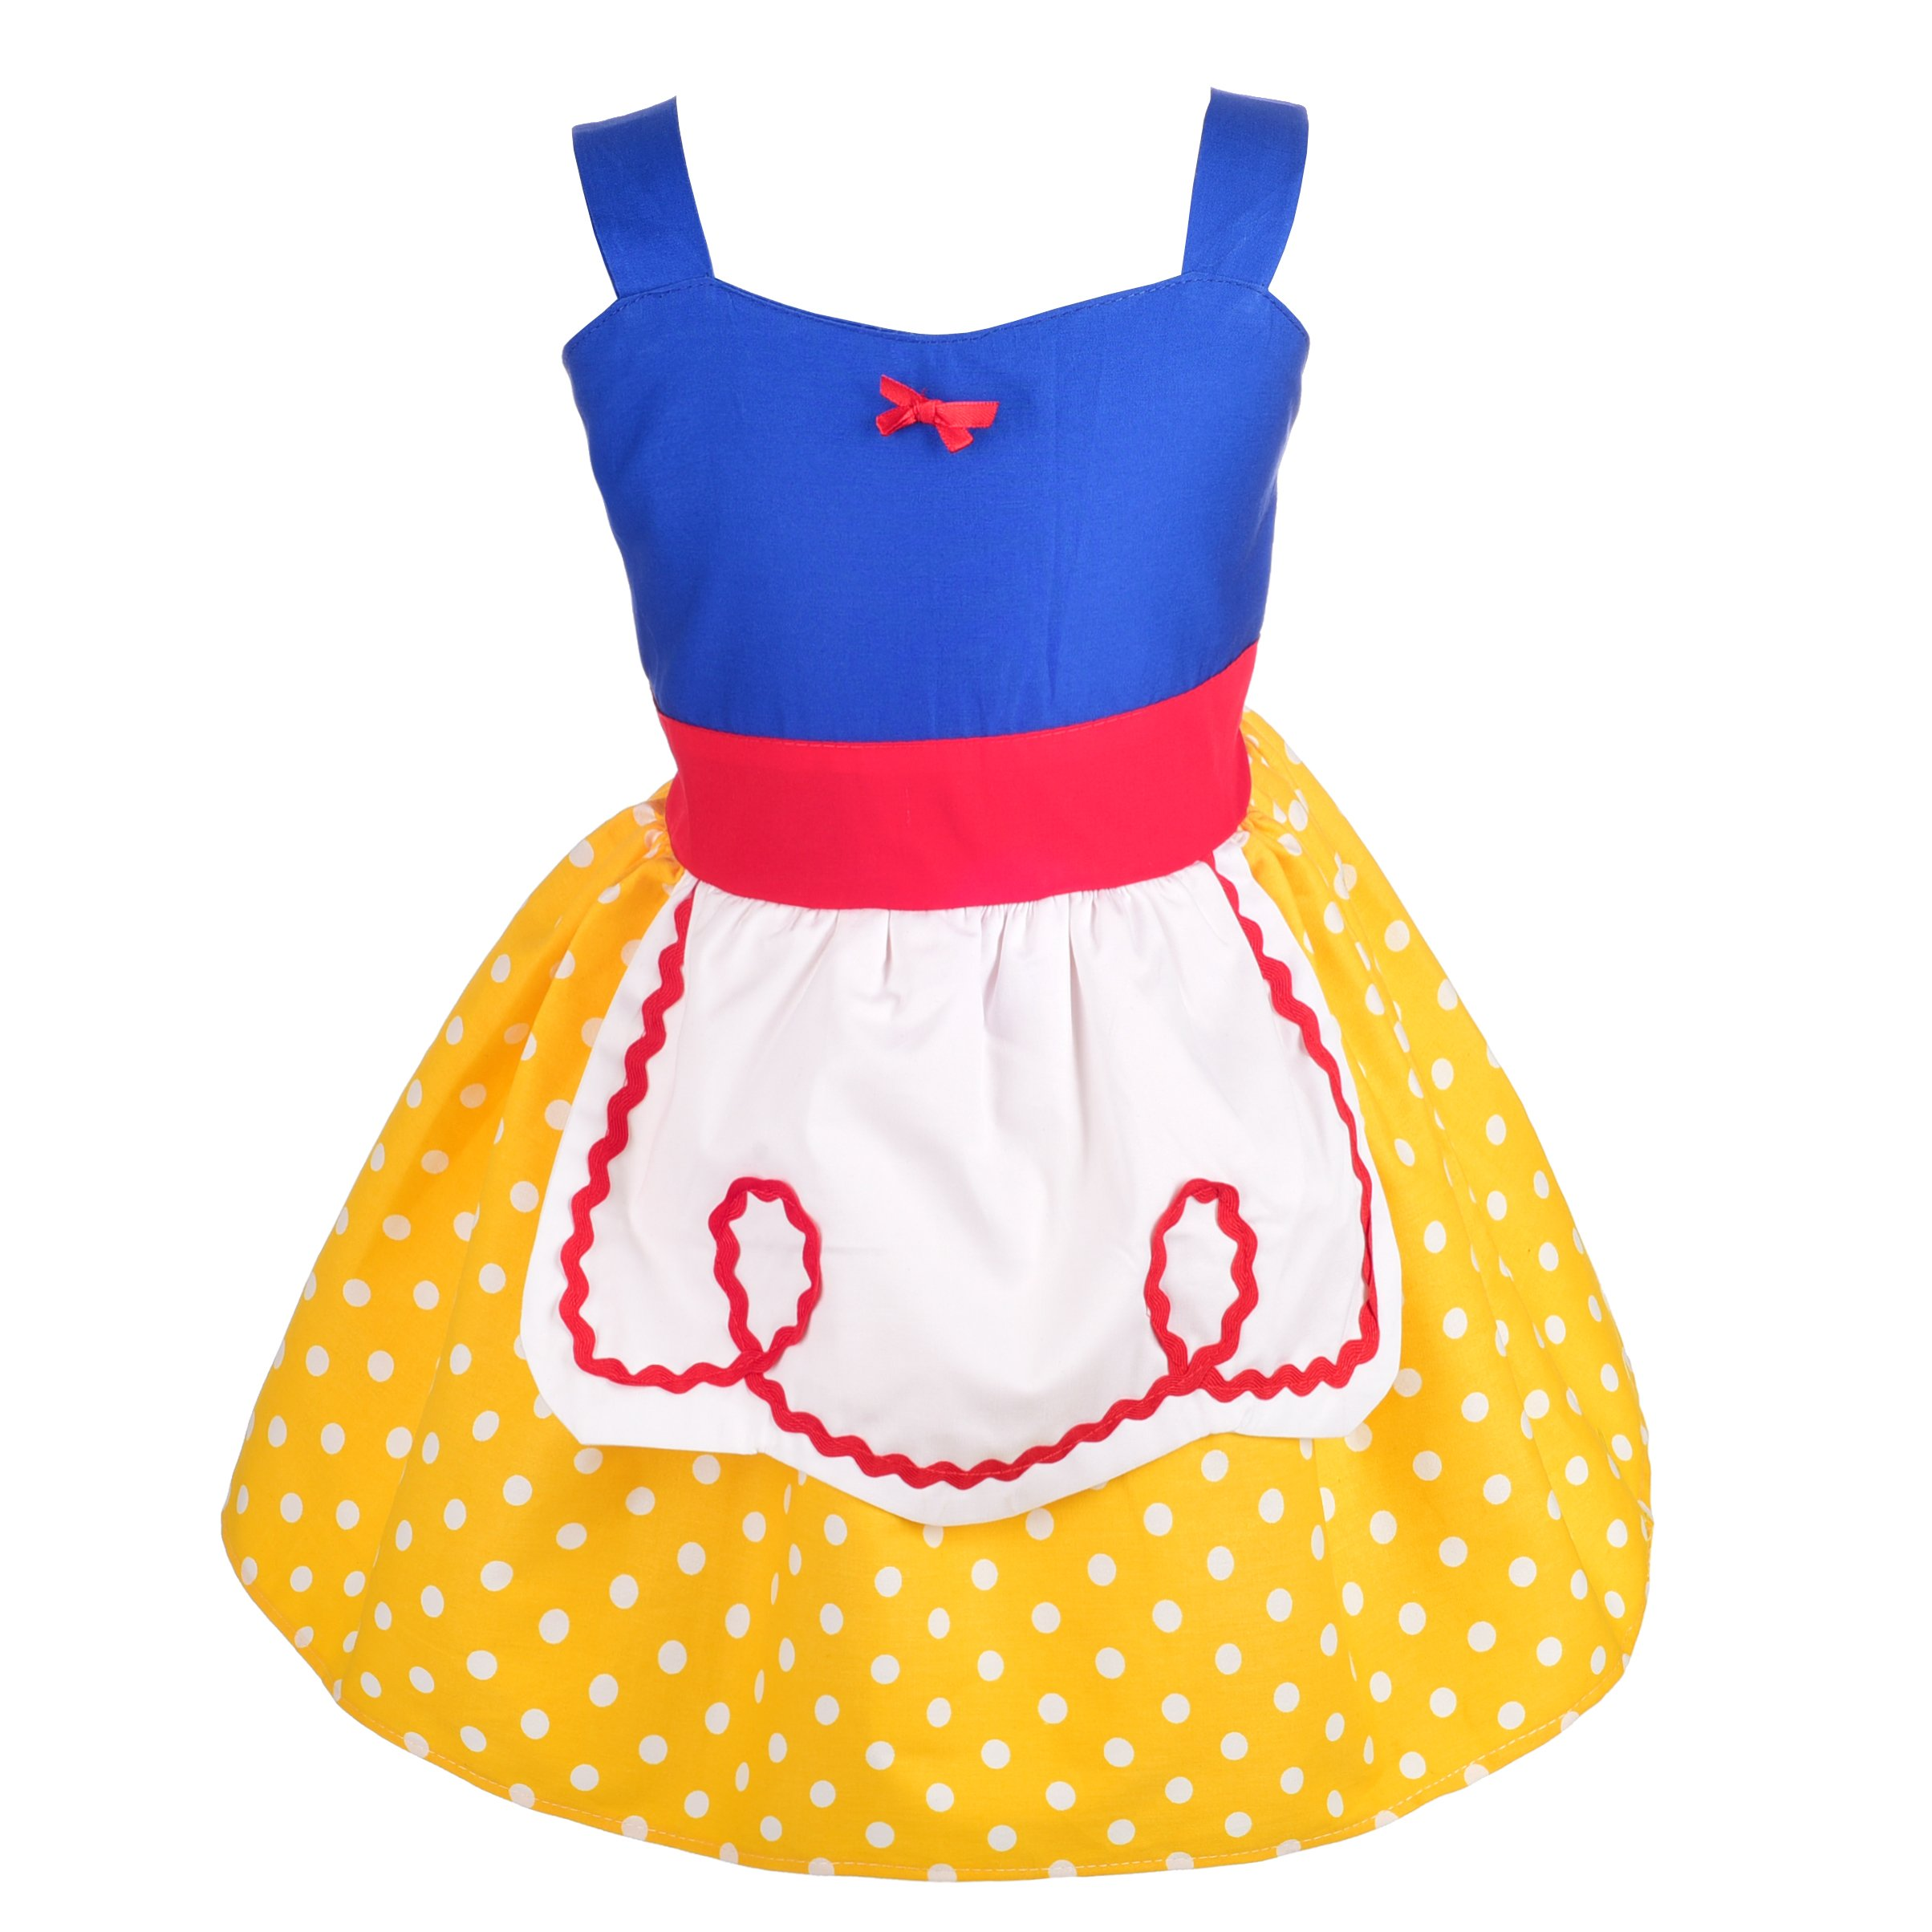 Dressy Daisy Princess Snow White Dress with Apron Summer Dresses for Girls Size 5